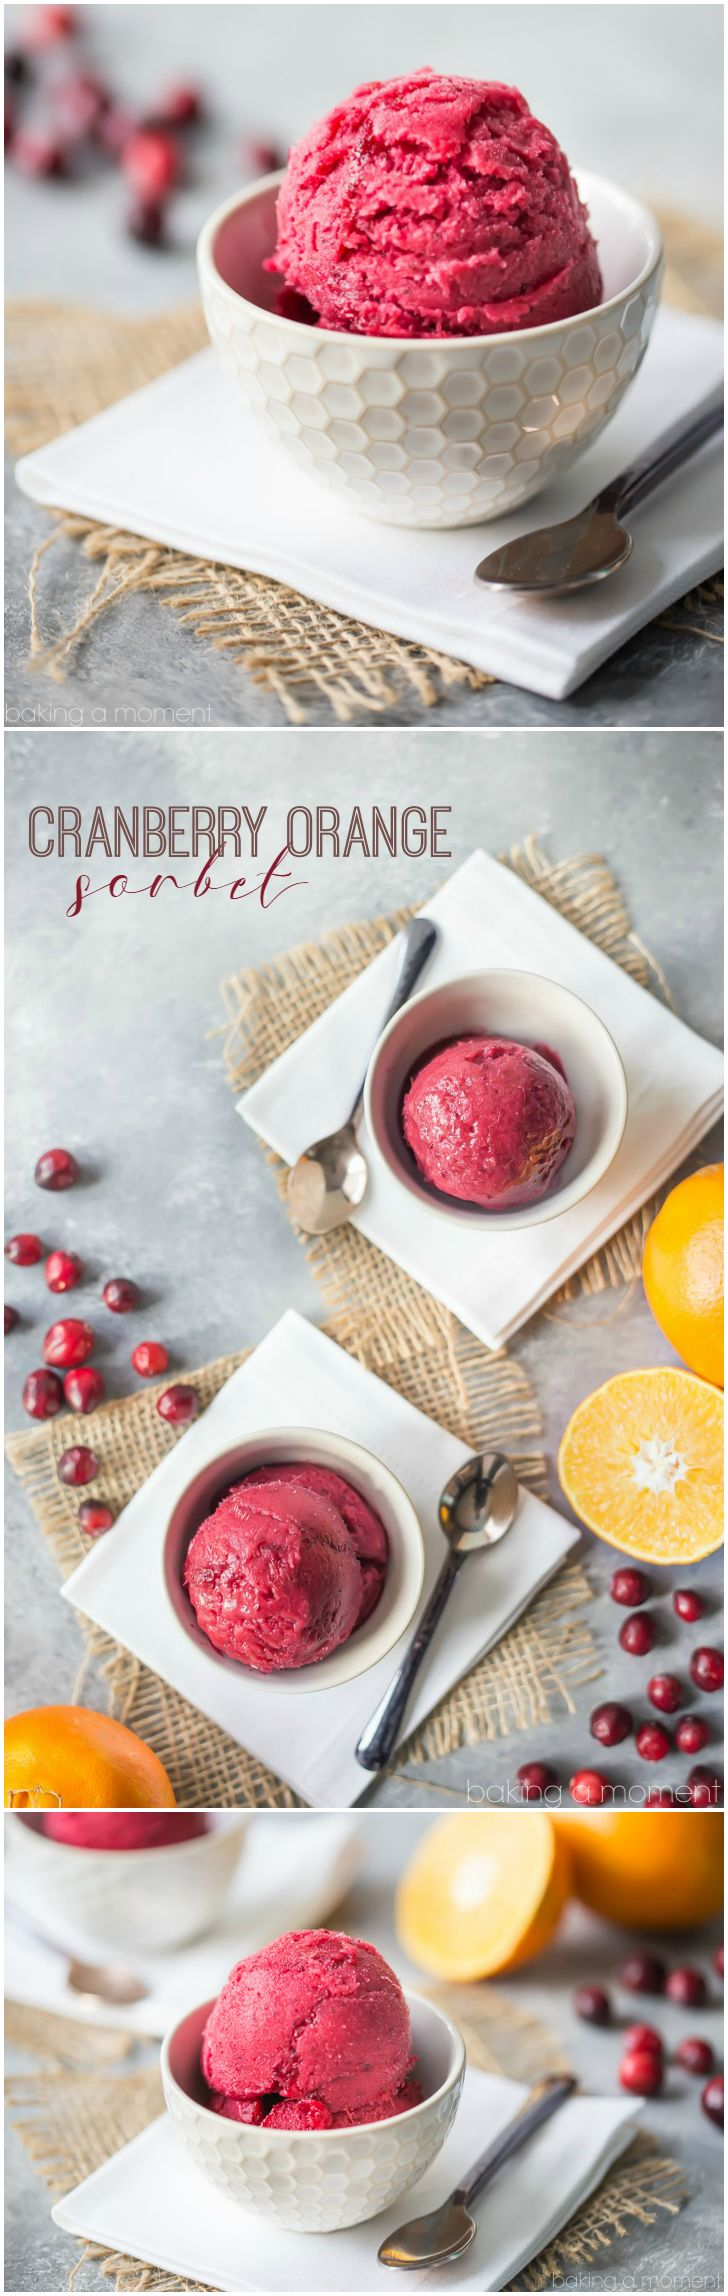 Cranberry orange sorbet: a light and refreshing dessert for fall and winter. Make this seasonal frozen treat this holiday!